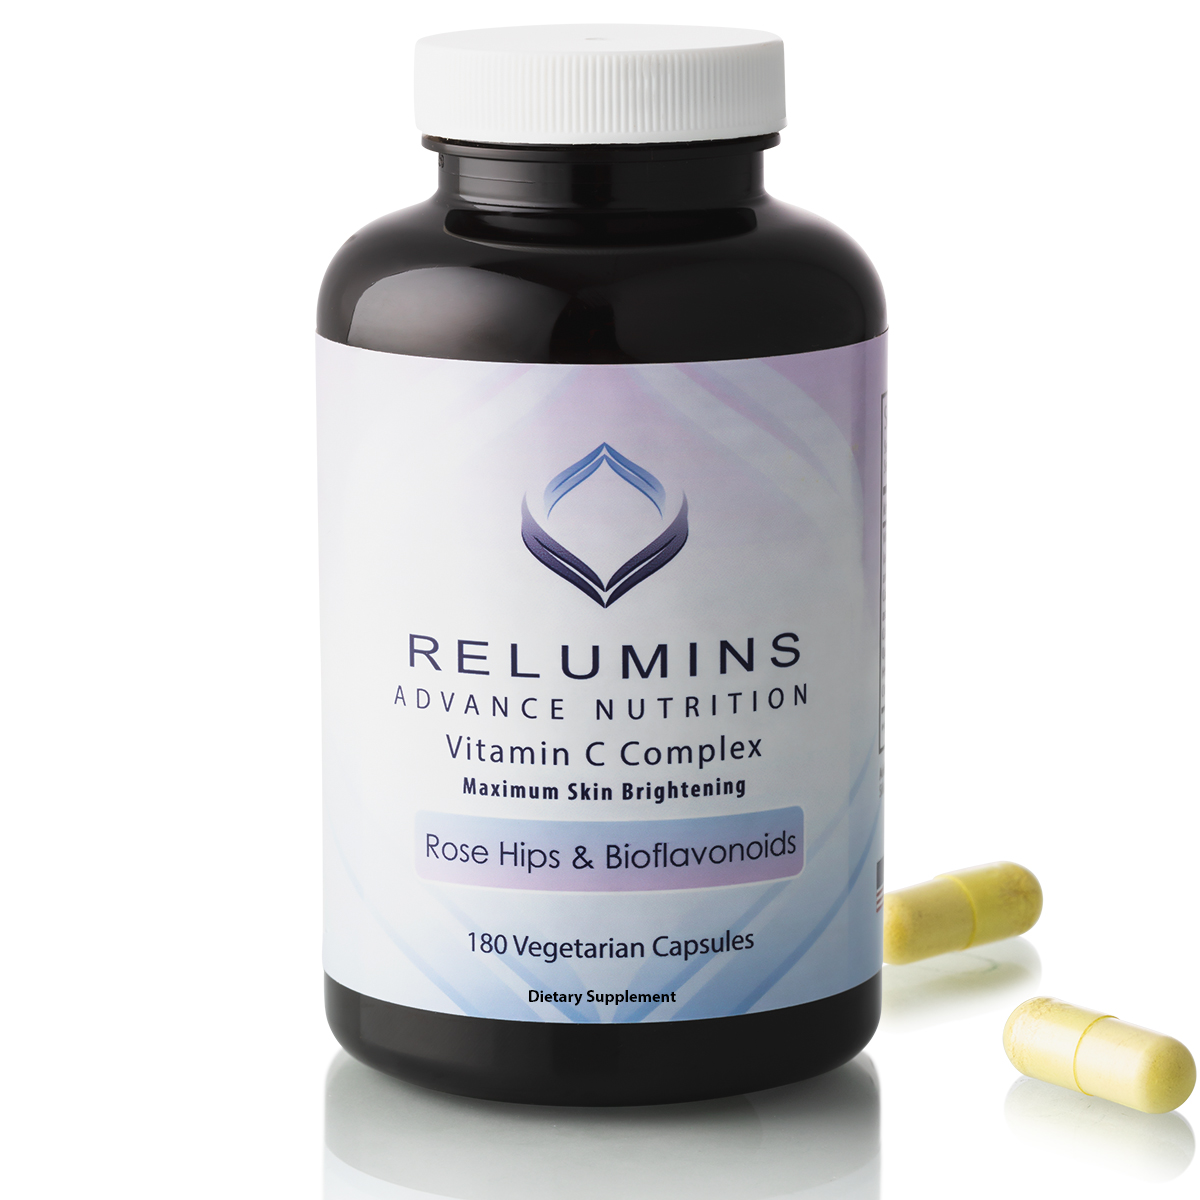 Relumins Advance Vitamin C MAX Skin Whitening Complex With Rose Hips & Bioflavinoids - 180 Capsules (90 Day Supply)